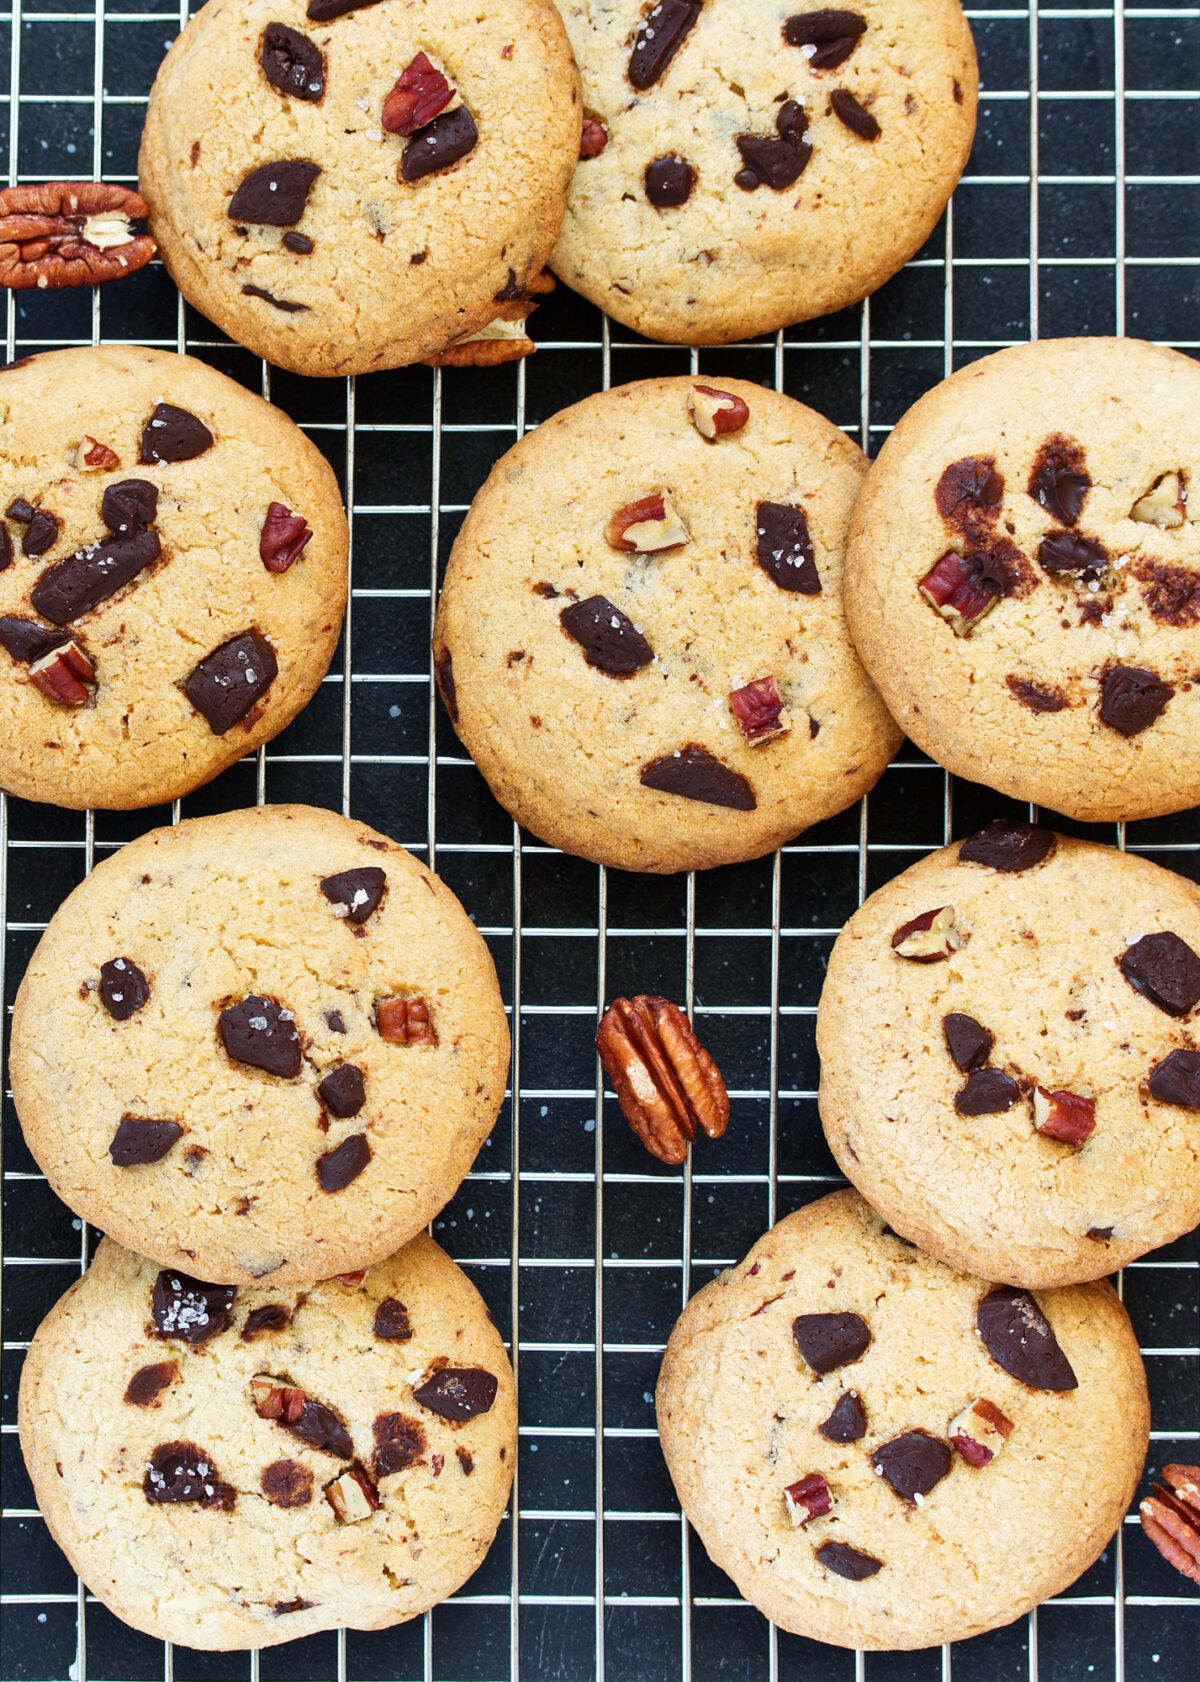 Chocolate Pecan Cookies are filled with pecans and chocolate, crispy on the outside and chewy inside, easy cookie recipe and perfect with a glass of milk or cup of tea! Also great for gifts!